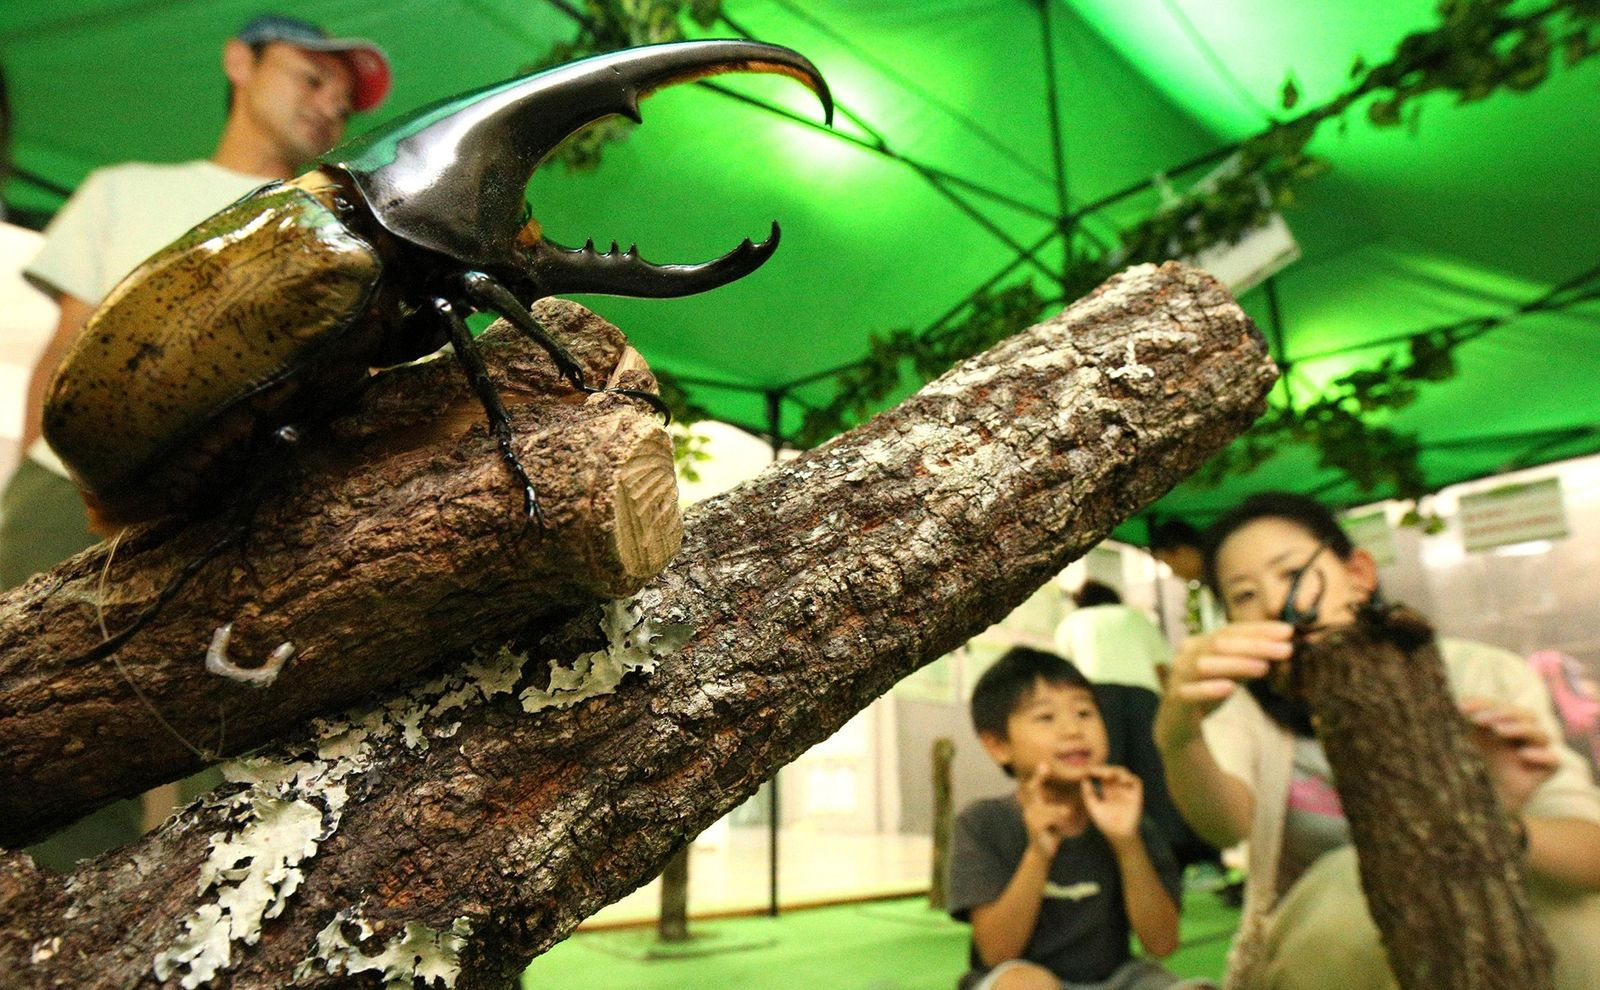 Why Rare Beetles Are Being Smuggled To Japan At An Alarming Rate National Geographic